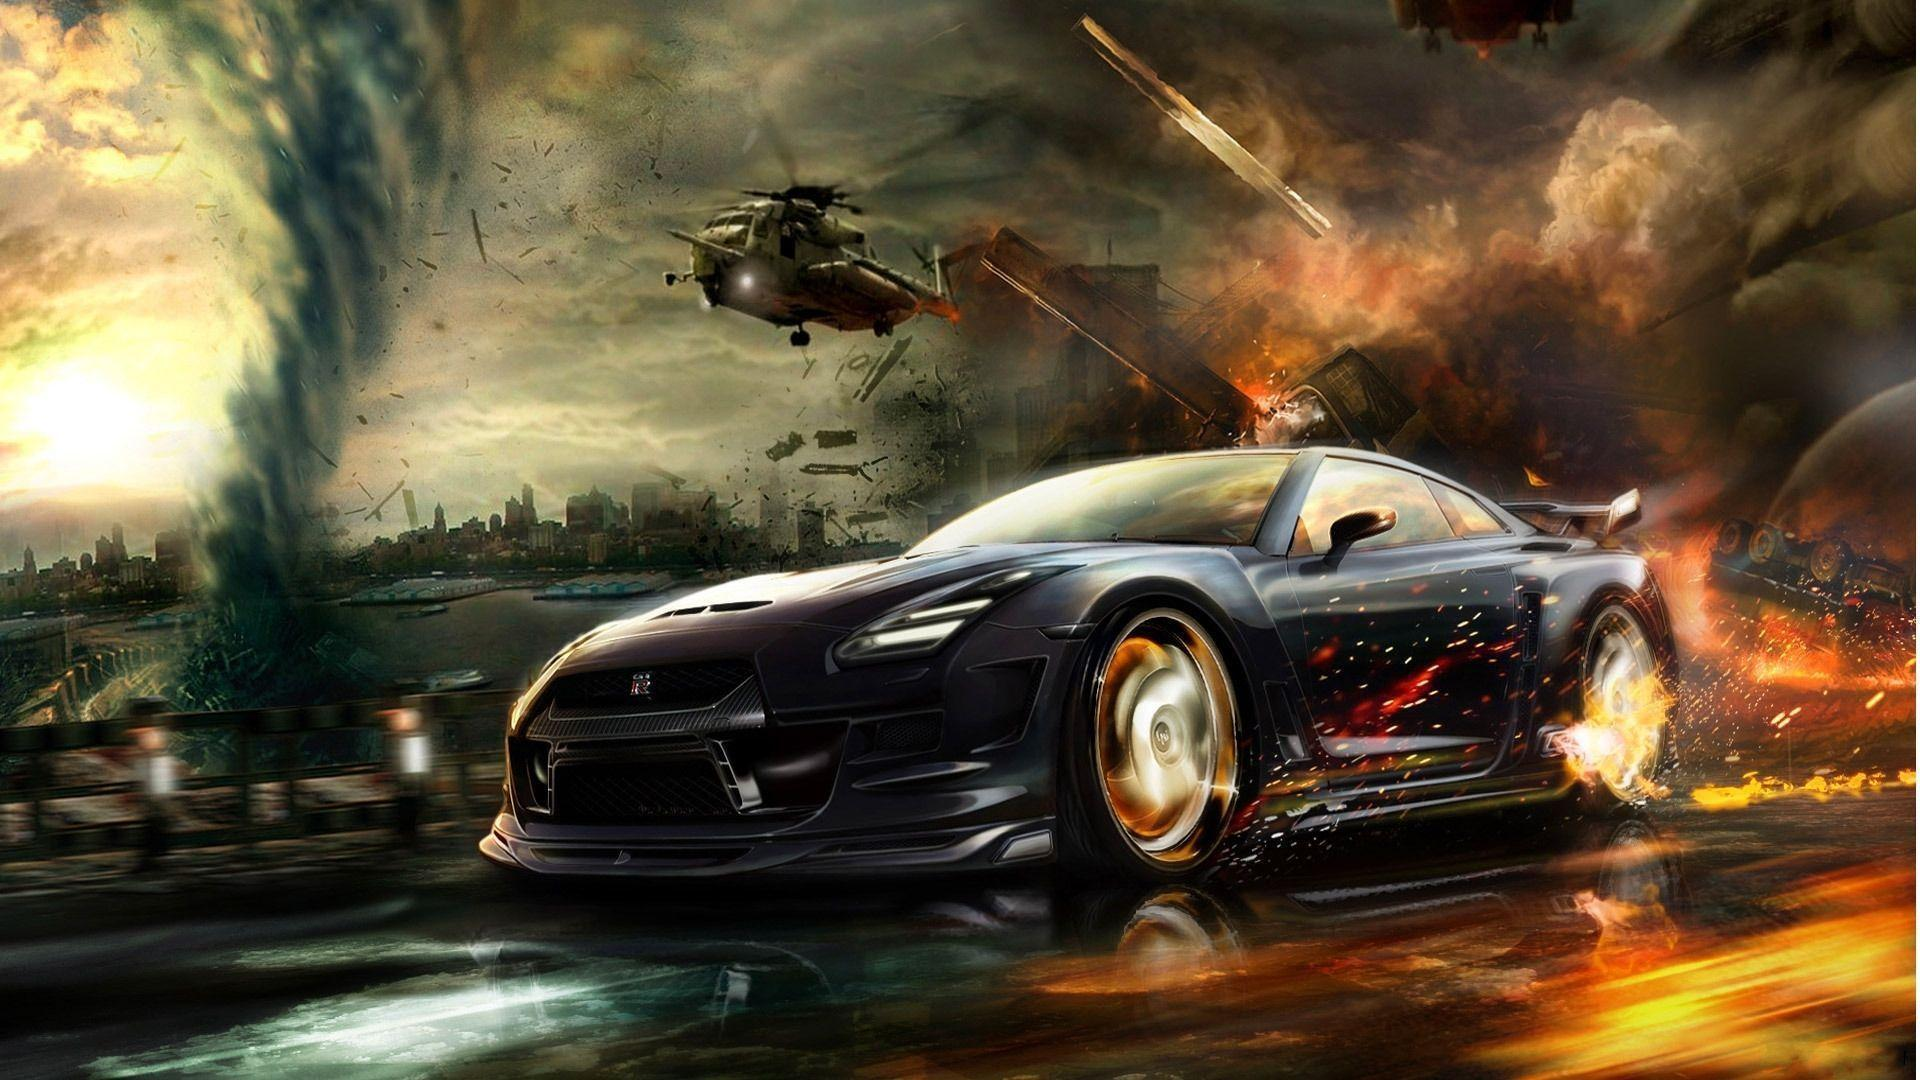 Nissan GTR In Games Wallpaper #1137 Wallpaper | Cool Walldiskpaper.com